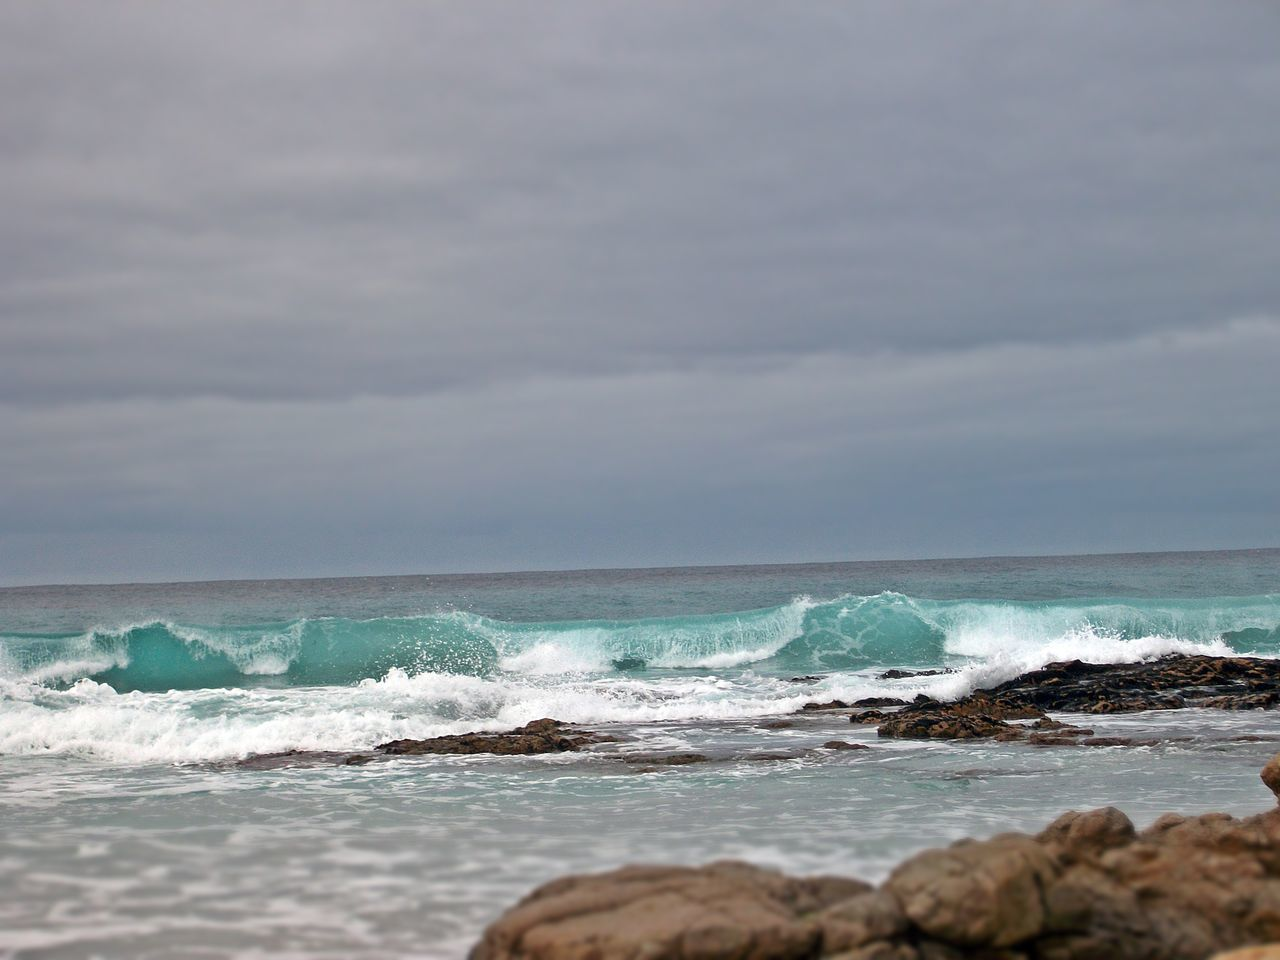 Friendly Beaches, Coles Bay Beach Beauty In Nature Cloud - Sky Day Friendly Beaches Horizon Over Water Nature No People Outdoors Scenics Sea Sky Storm Storm Cloud Tasmania Water Wave